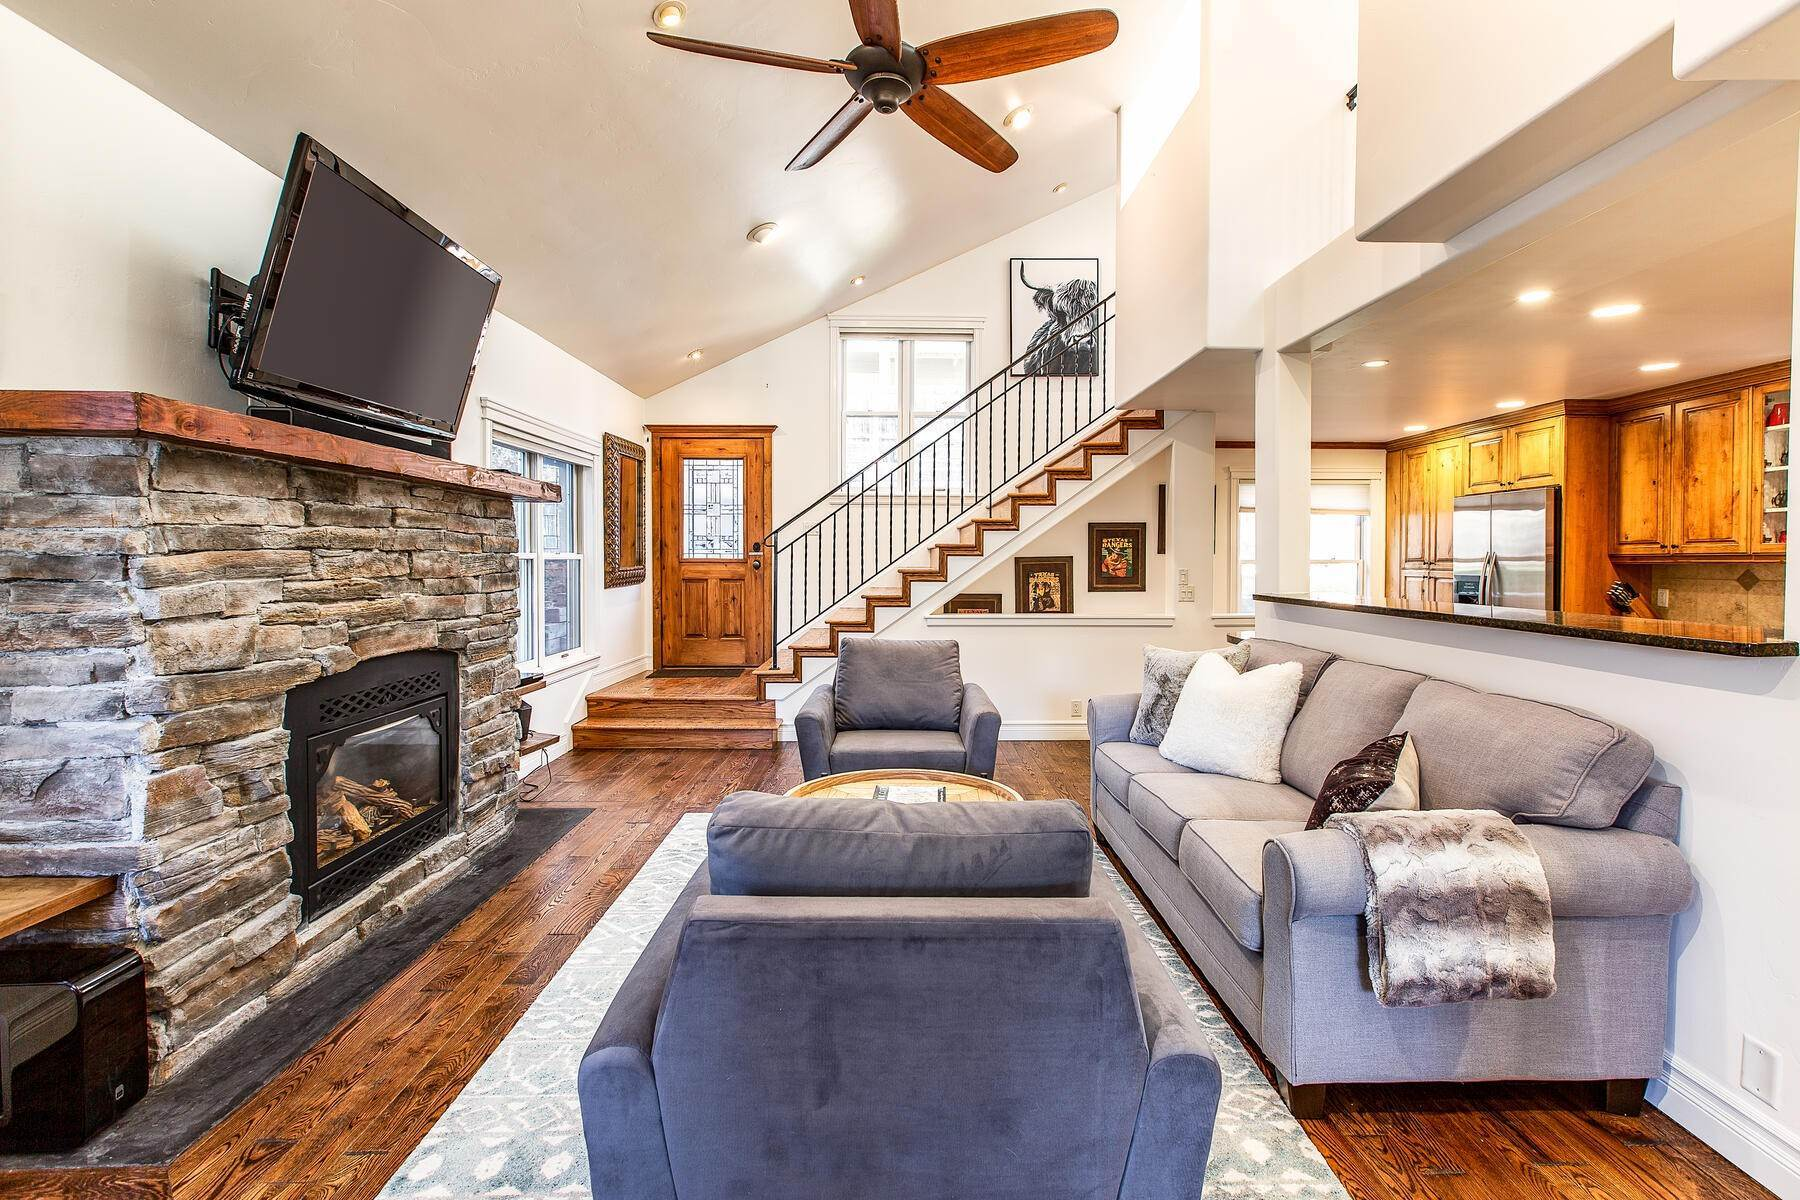 2. Single Family Homes for Sale at An Updated Turn Key Home Steps to Skiing and Main Street 915 Norfolk Ave Park City, Utah 84060 United States